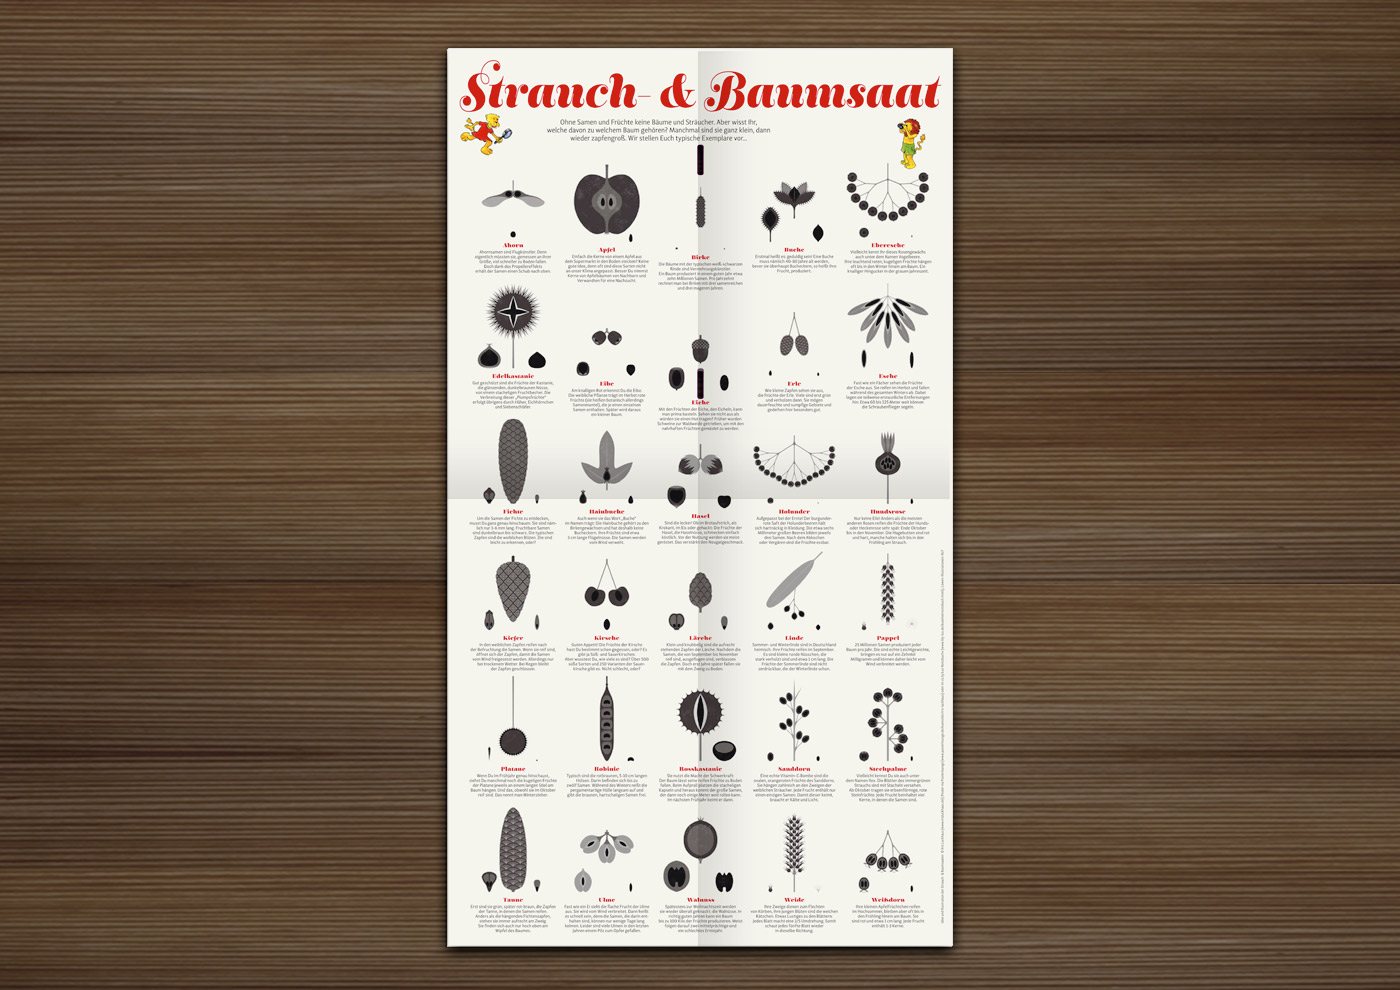 A practical infographic chart sheet that helps you to easily identify, learn and remember the fruits, nuts, cones and seeds of trees and shrubs like alder, apple, ash, beech, birch, buckeye, buckthorn, cherry, chestnut, dogrose (rose-hips), elder (berries), elm, fir, hazel, holly, hornbeam, larch, linden/lime, locust, maple, oak (acorns), pine (nuts), plane, poplar, rowan, sloe, spruce, sycamore, walnut, willow and yew im Waldstück-Magazin der Niedersächsischen Landesforste